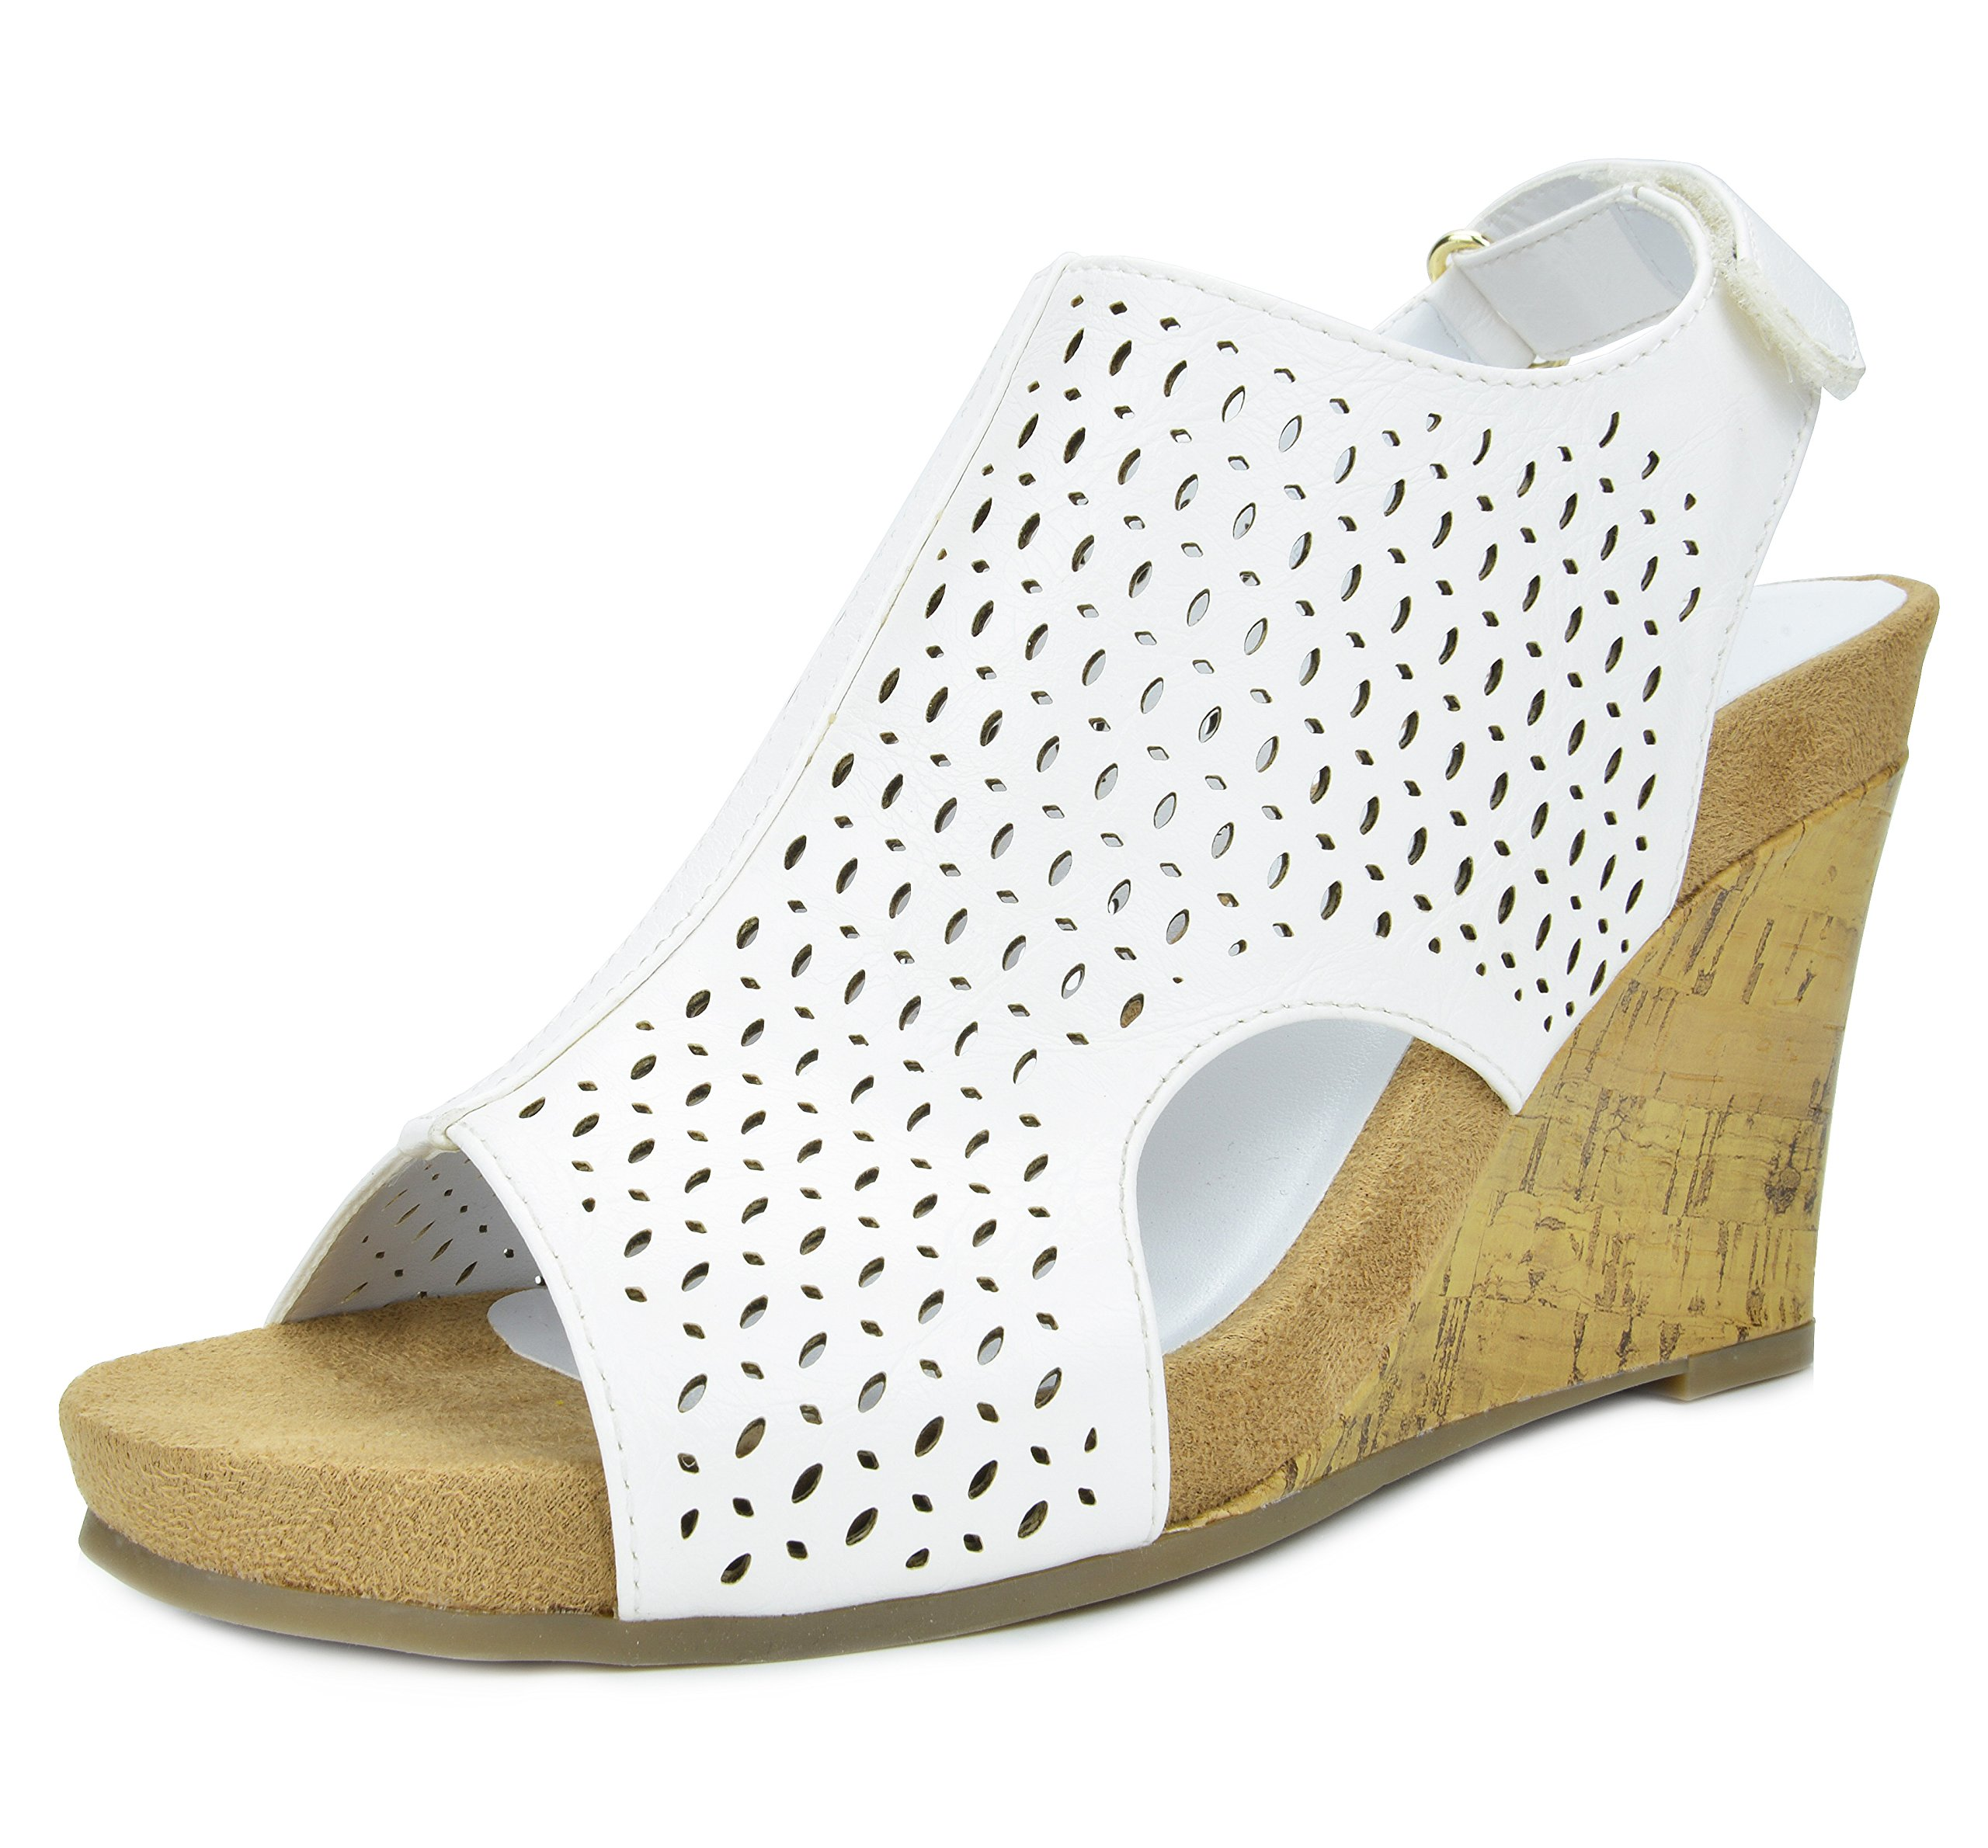 TOETOS Women's Solsoft-6 White Pu Mid Heel Platform Wedges Sandals - 9 M US